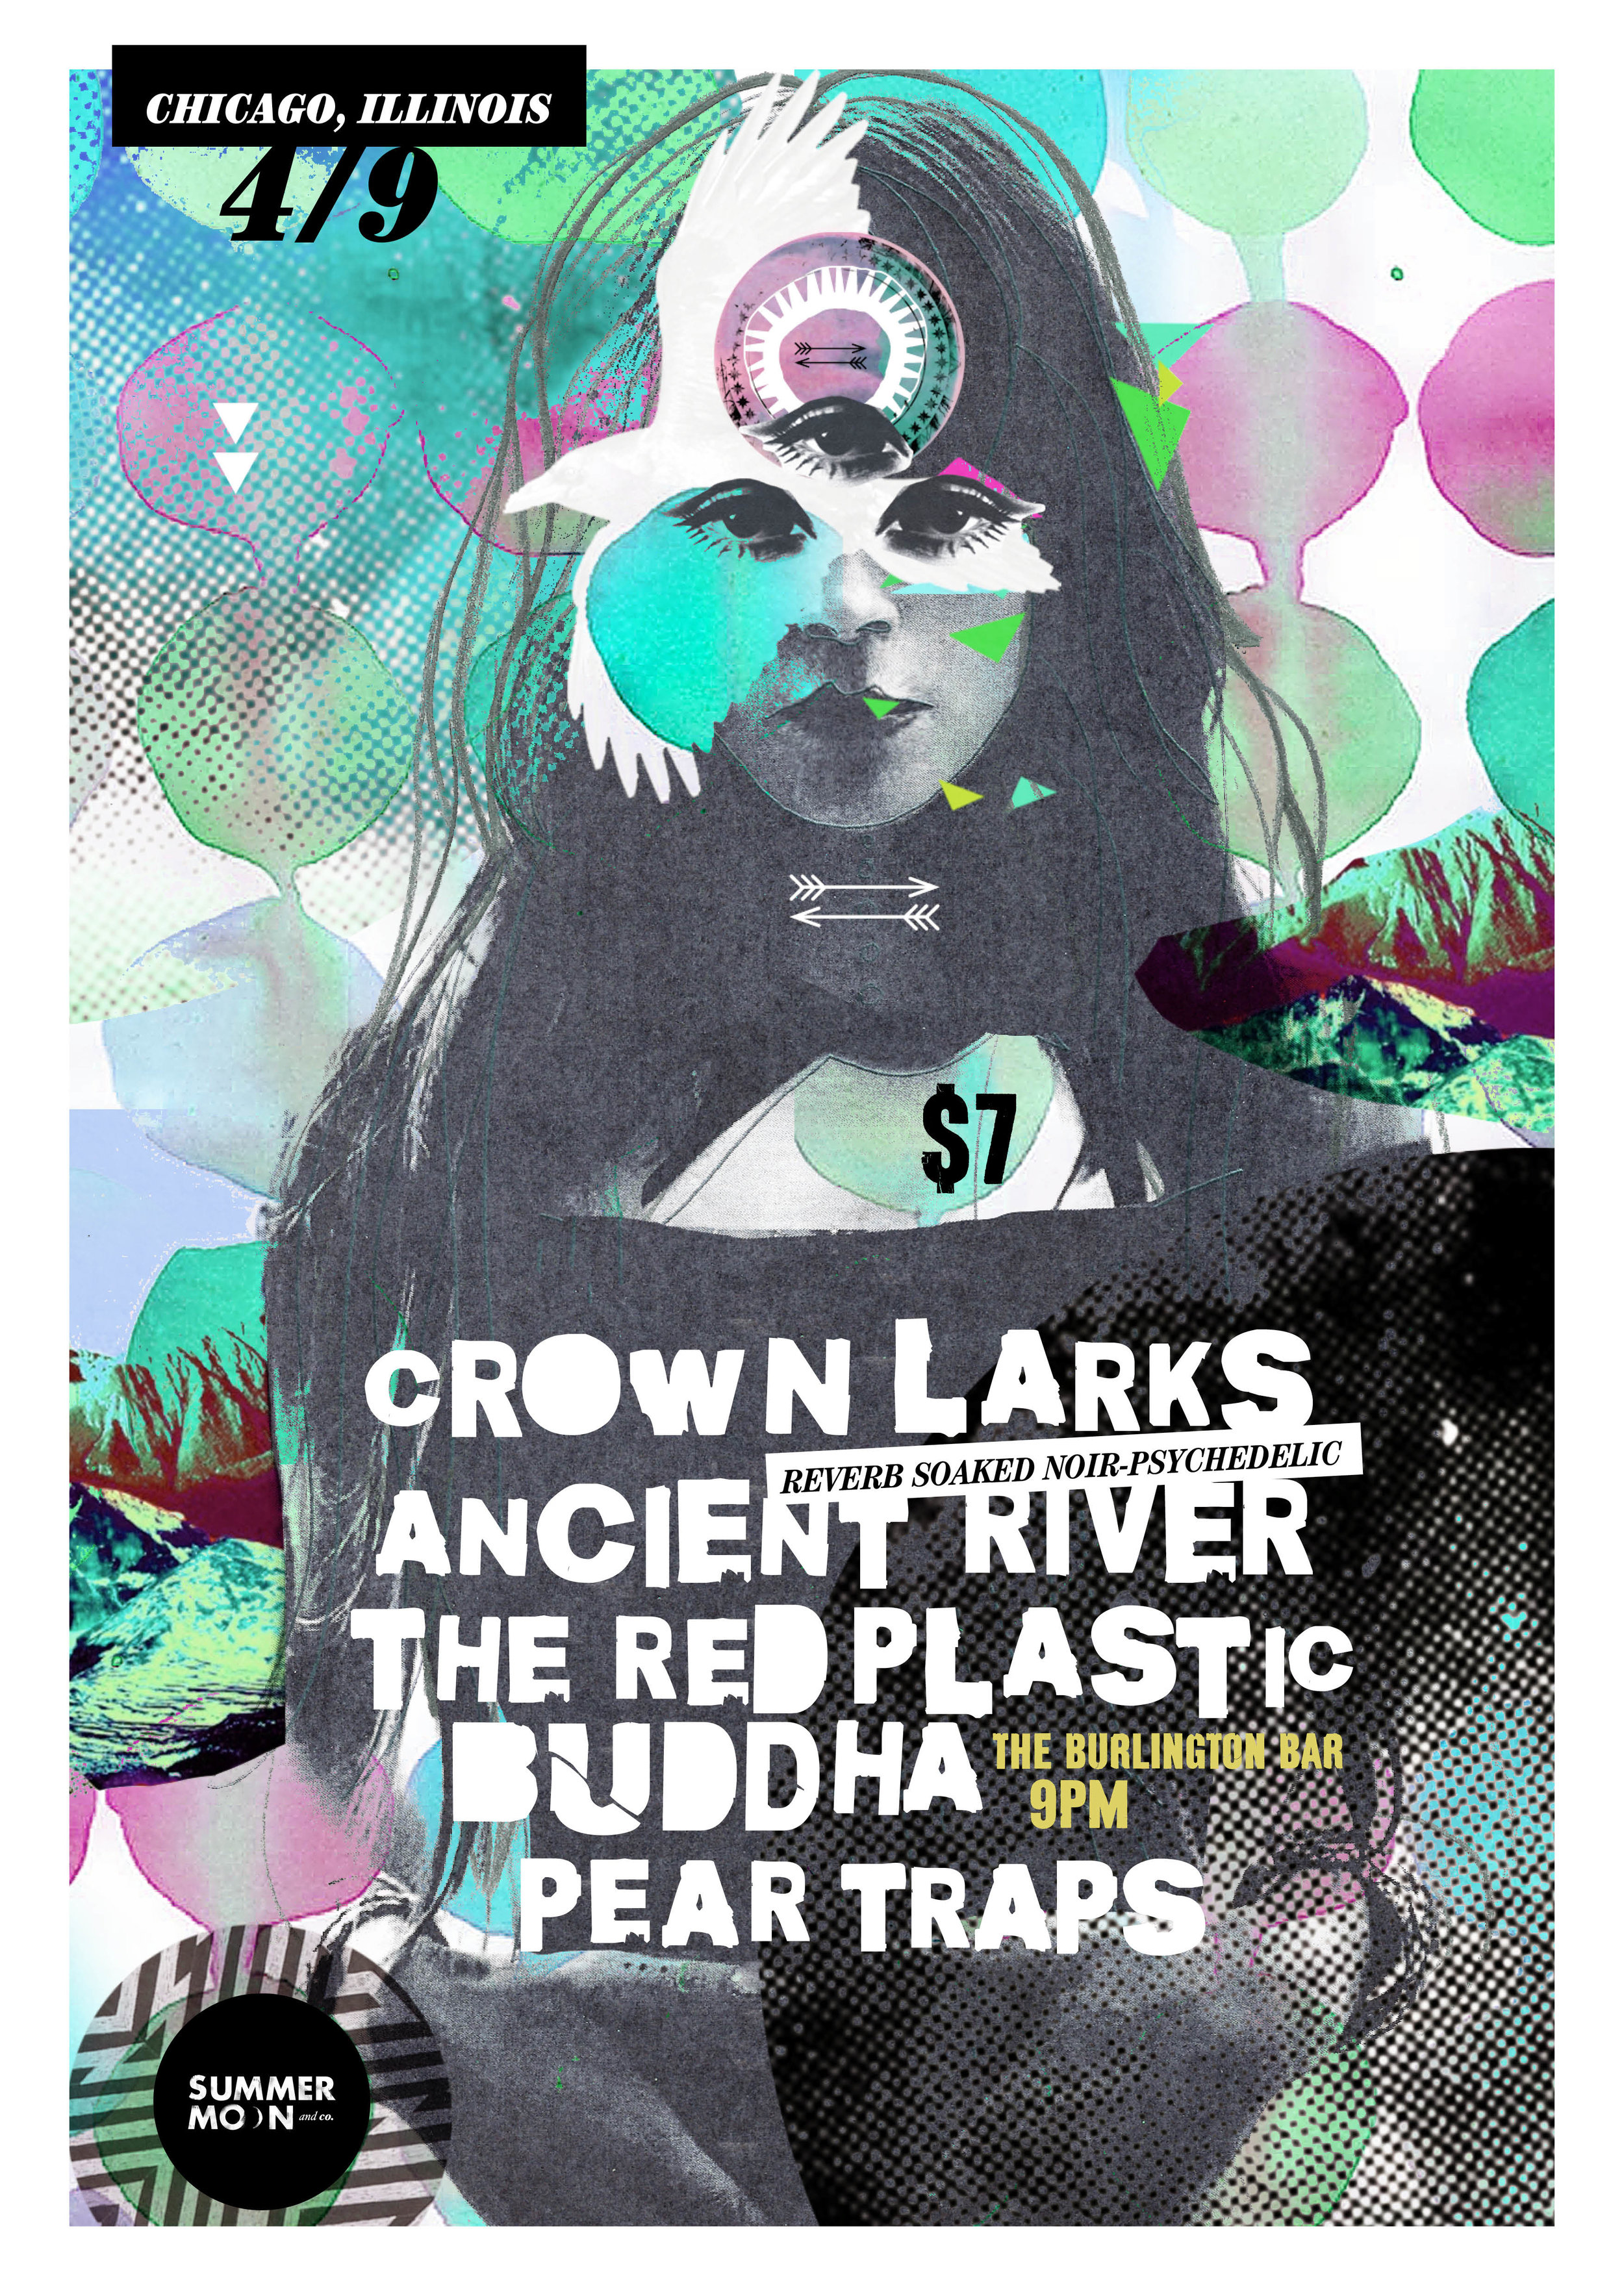 ancient river chicago poster.jpg